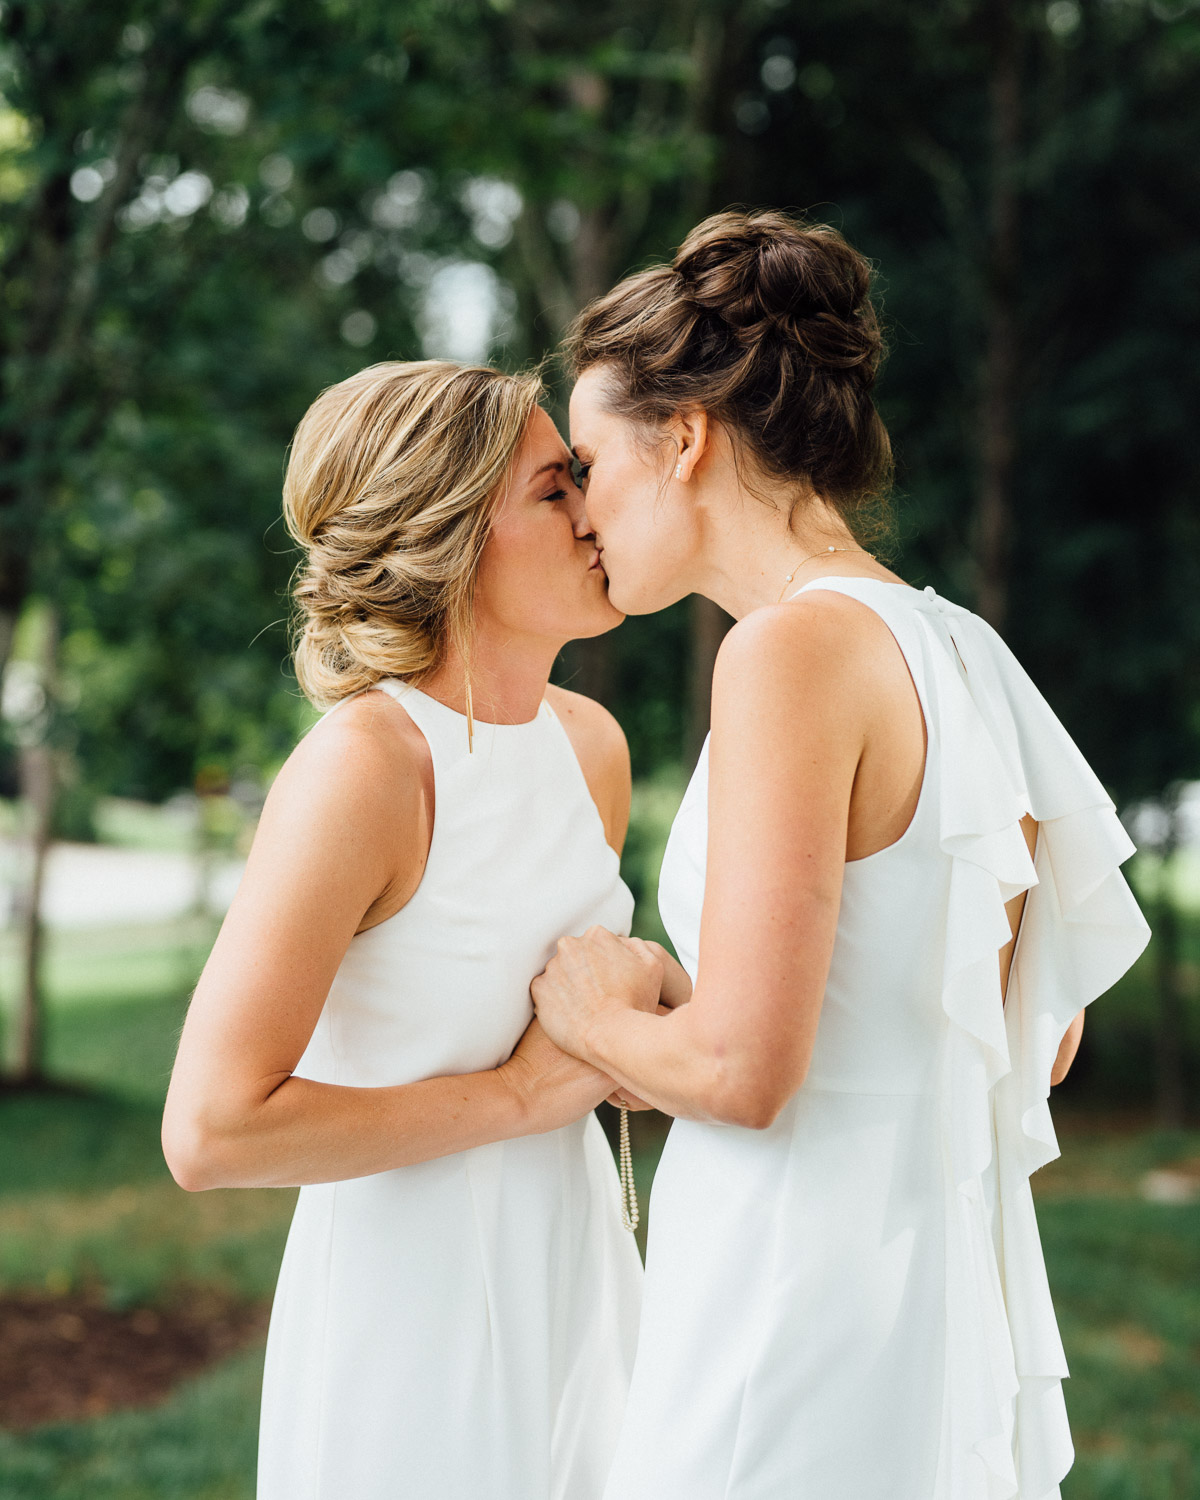 lgbt-wedding-photographer Becky and Kelly | Intimate Backyard Wedding